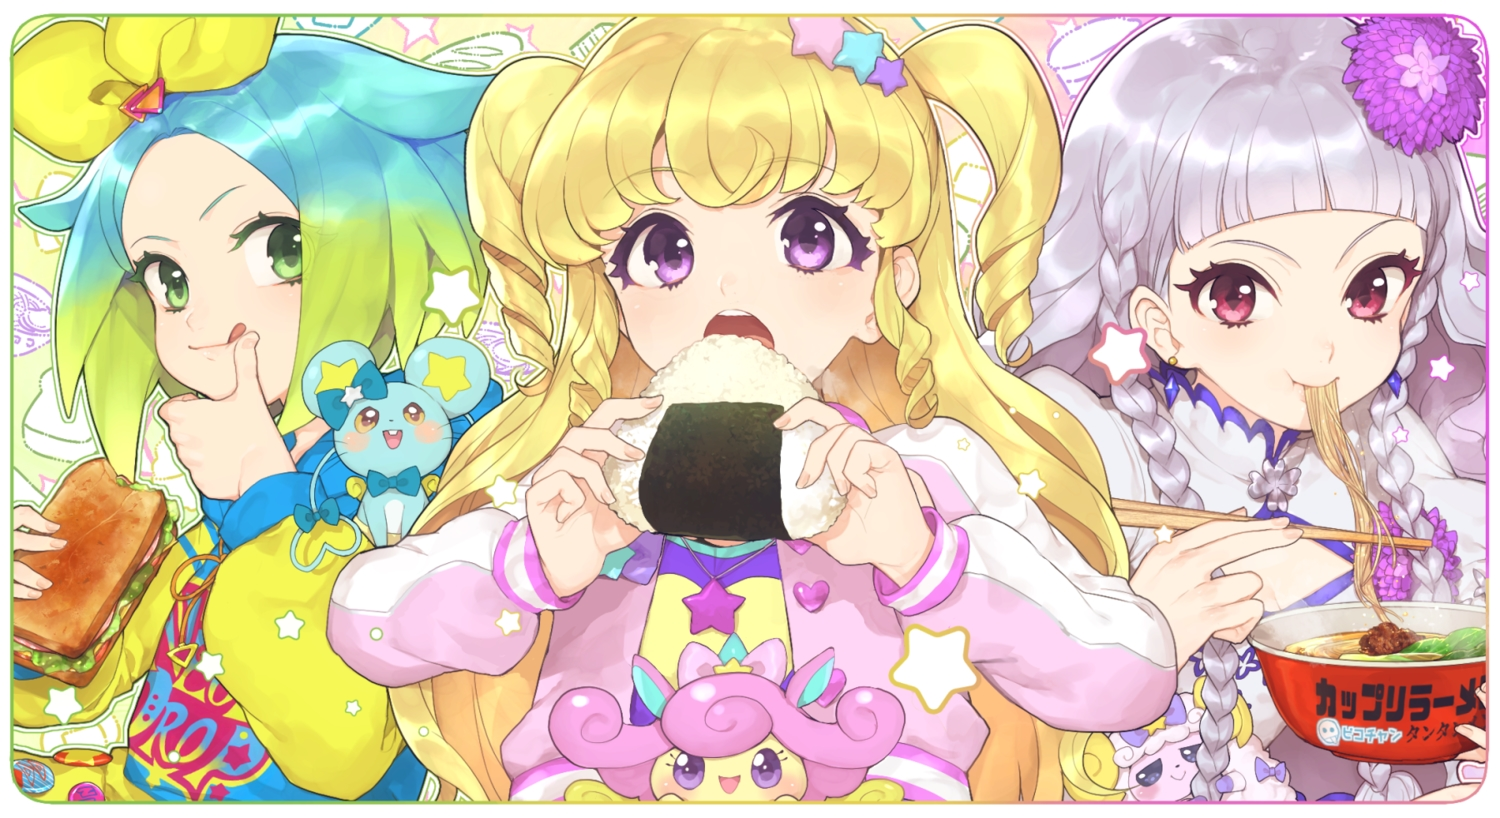 aikatsu! animal blonde_hair braids chinese_clothes chinese_dress food gray_hair green_eyes green_hair hitoto hoodie long_hair mouse necklace purple_eyes red_eyes short_hair tagme_(character) twintails